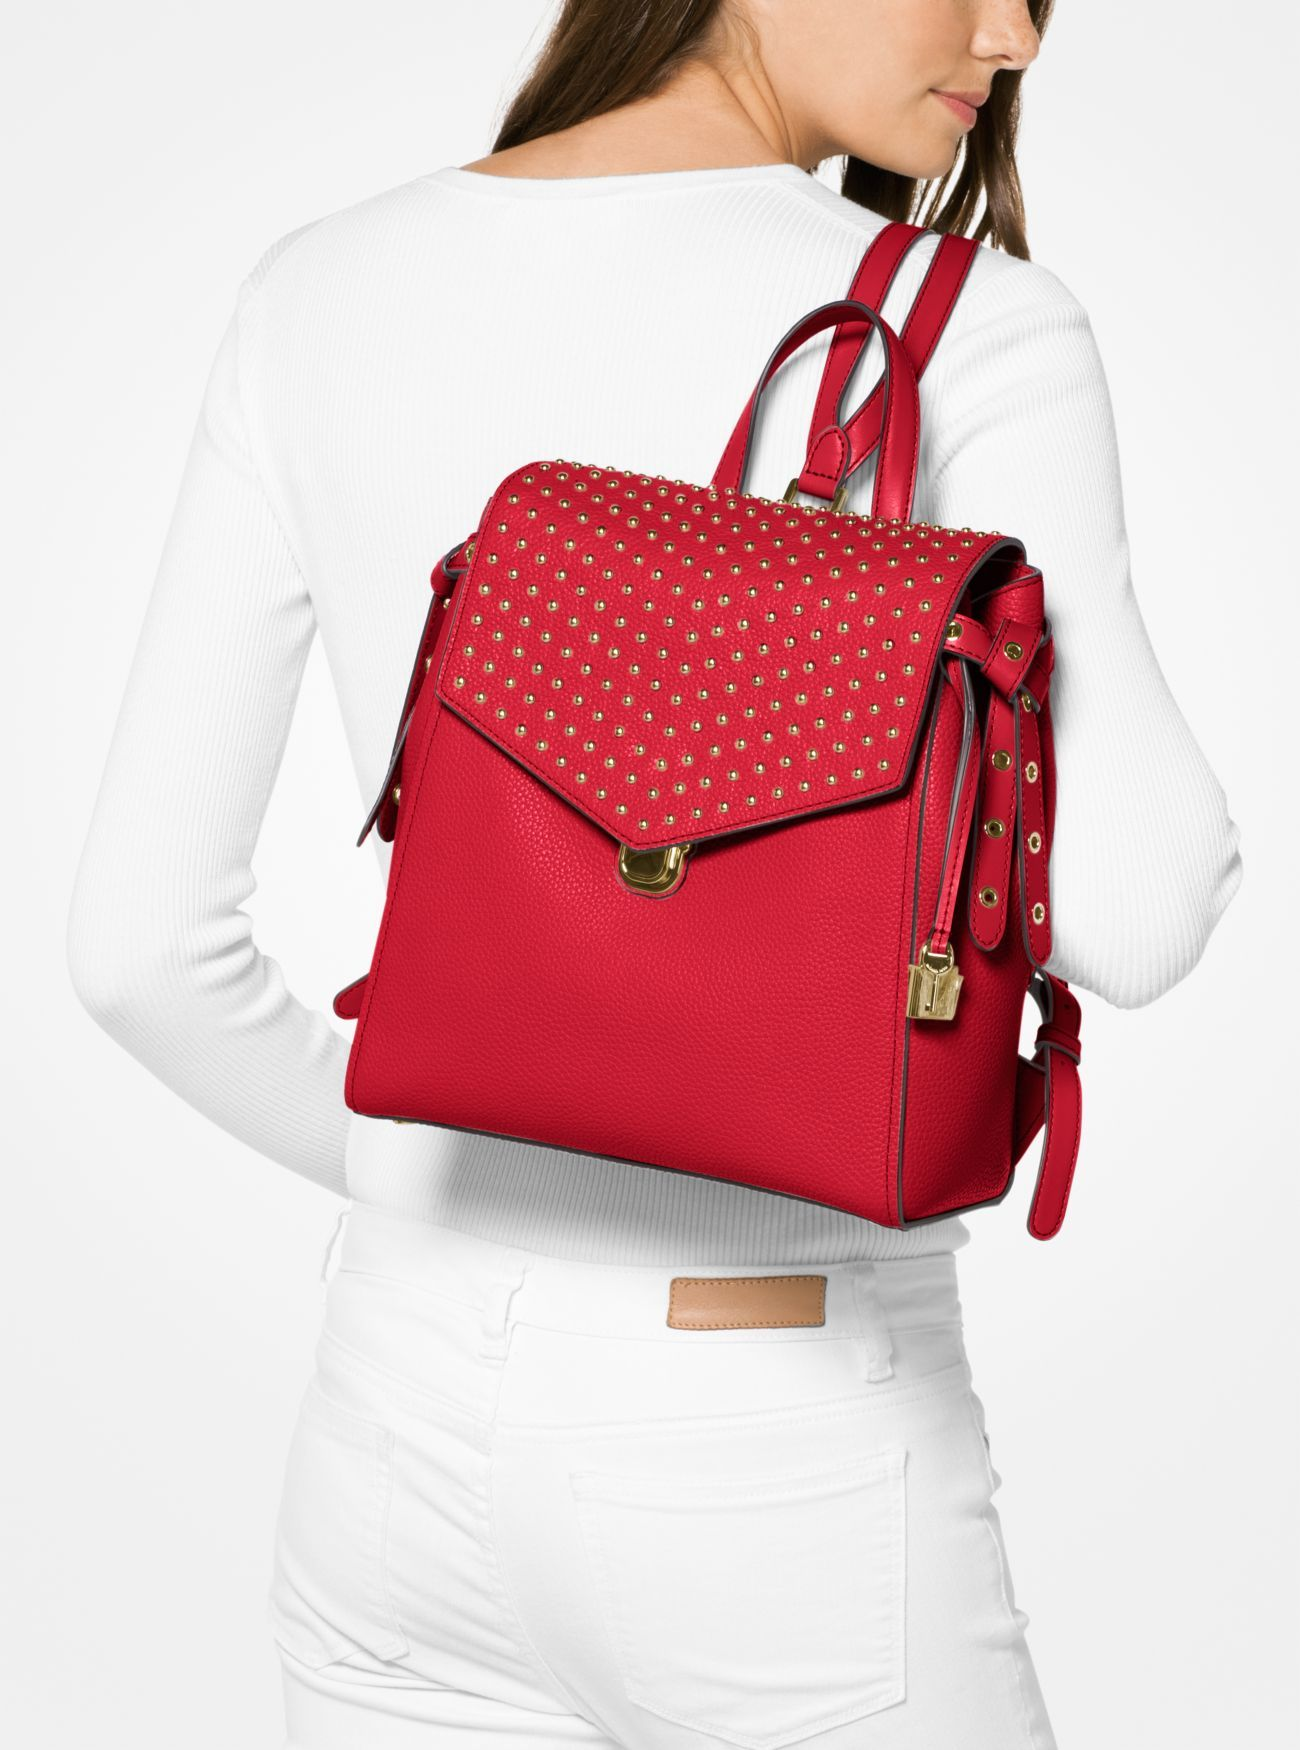 ed0367a865f47d Bristol Medium Studded Leather Backpack. Bristol Medium Studded Leather  Backpack Michael Kors ...